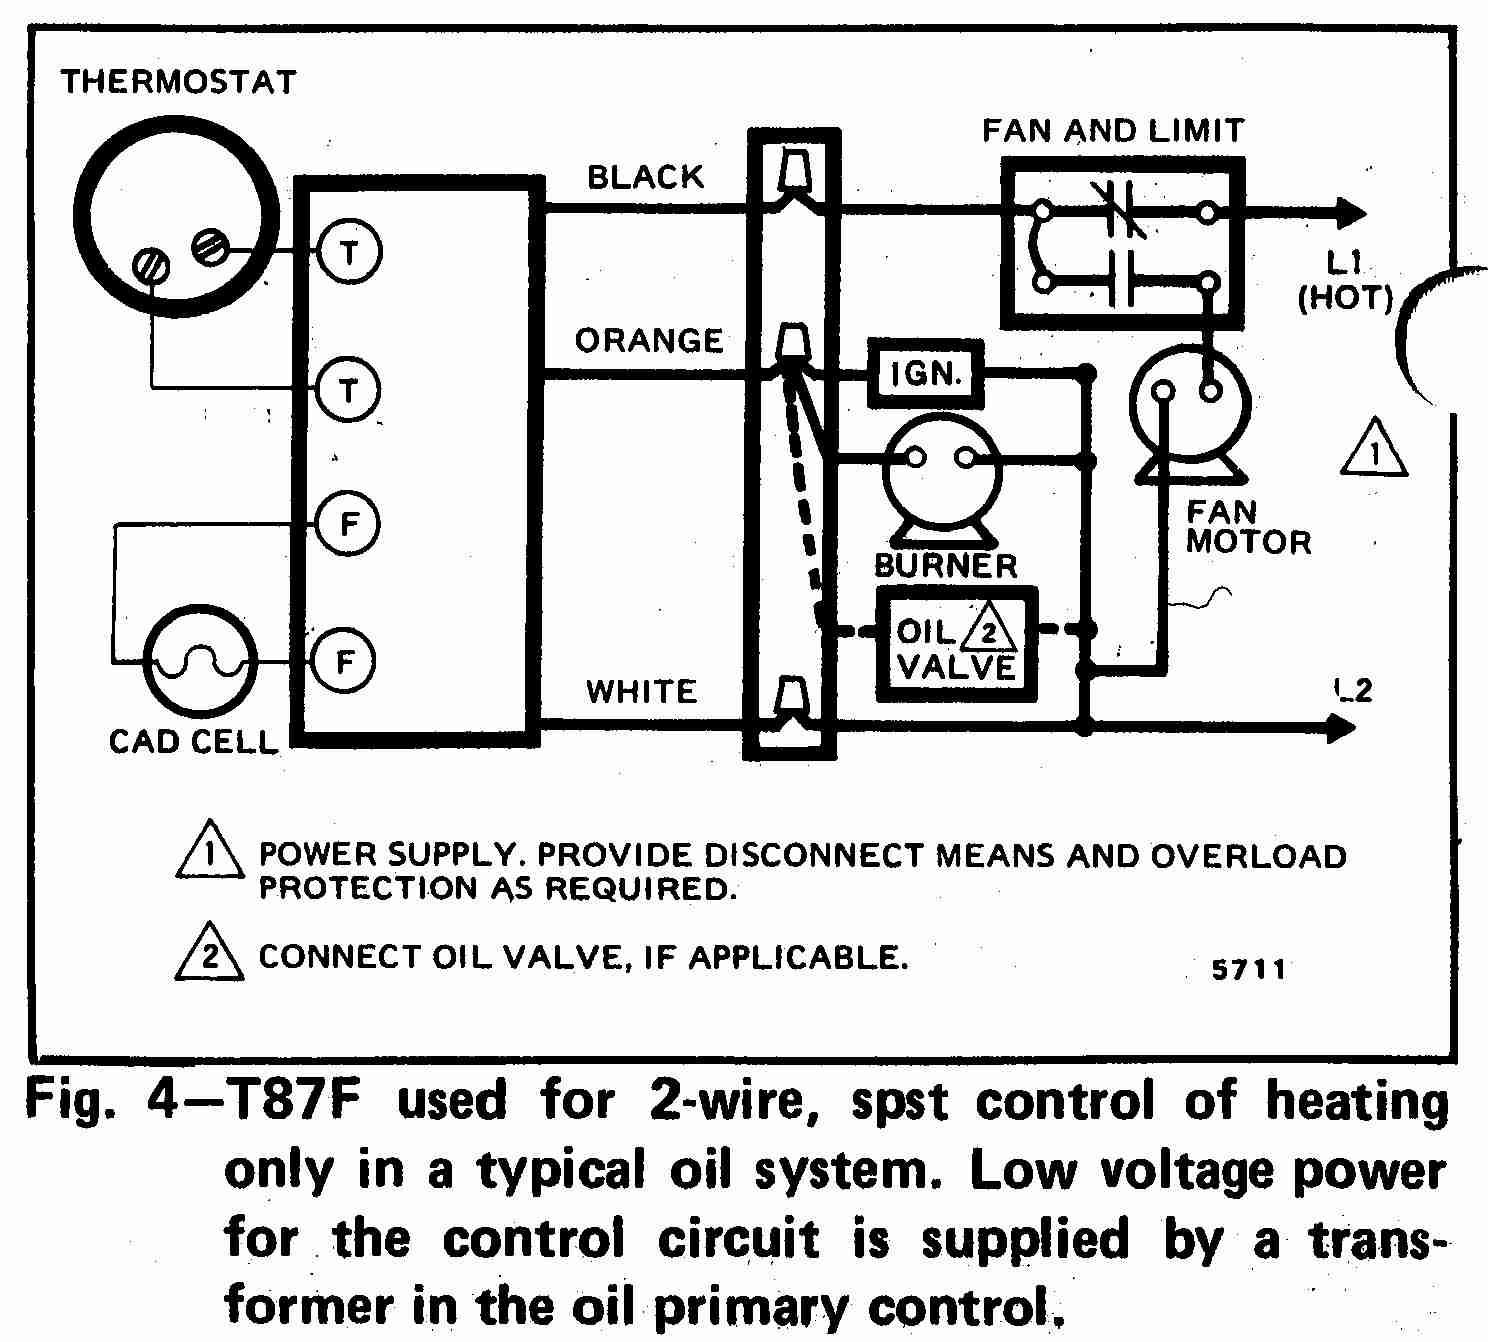 hight resolution of room thermostat wiring diagrams for hvac systems ricon wiring diagrams honeywell t87f thermostat wiring diagram for